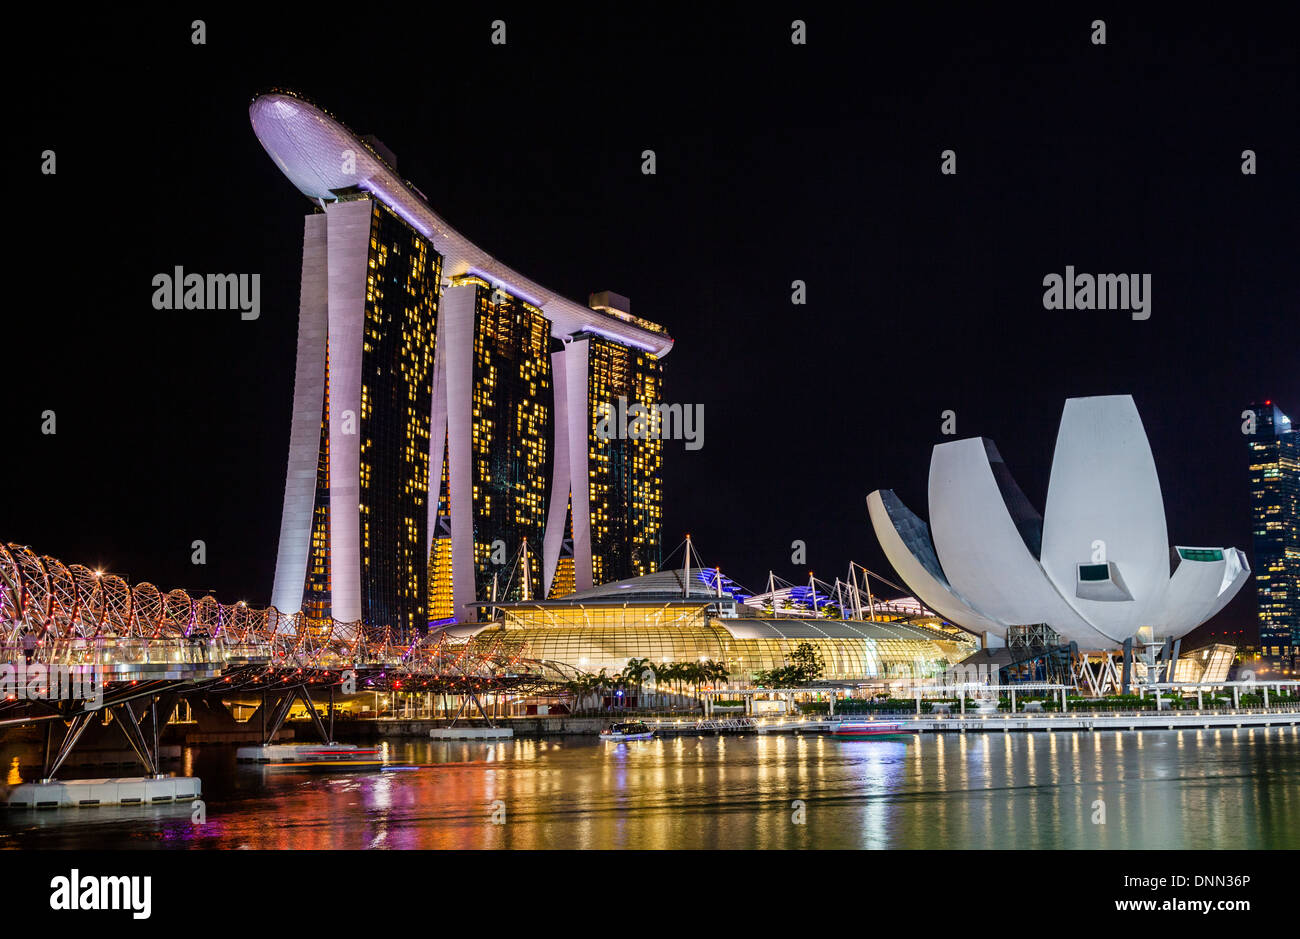 Singapore, night view of Marina Bay Sands, Art Science Museum and the Helix Bridge - Stock Image